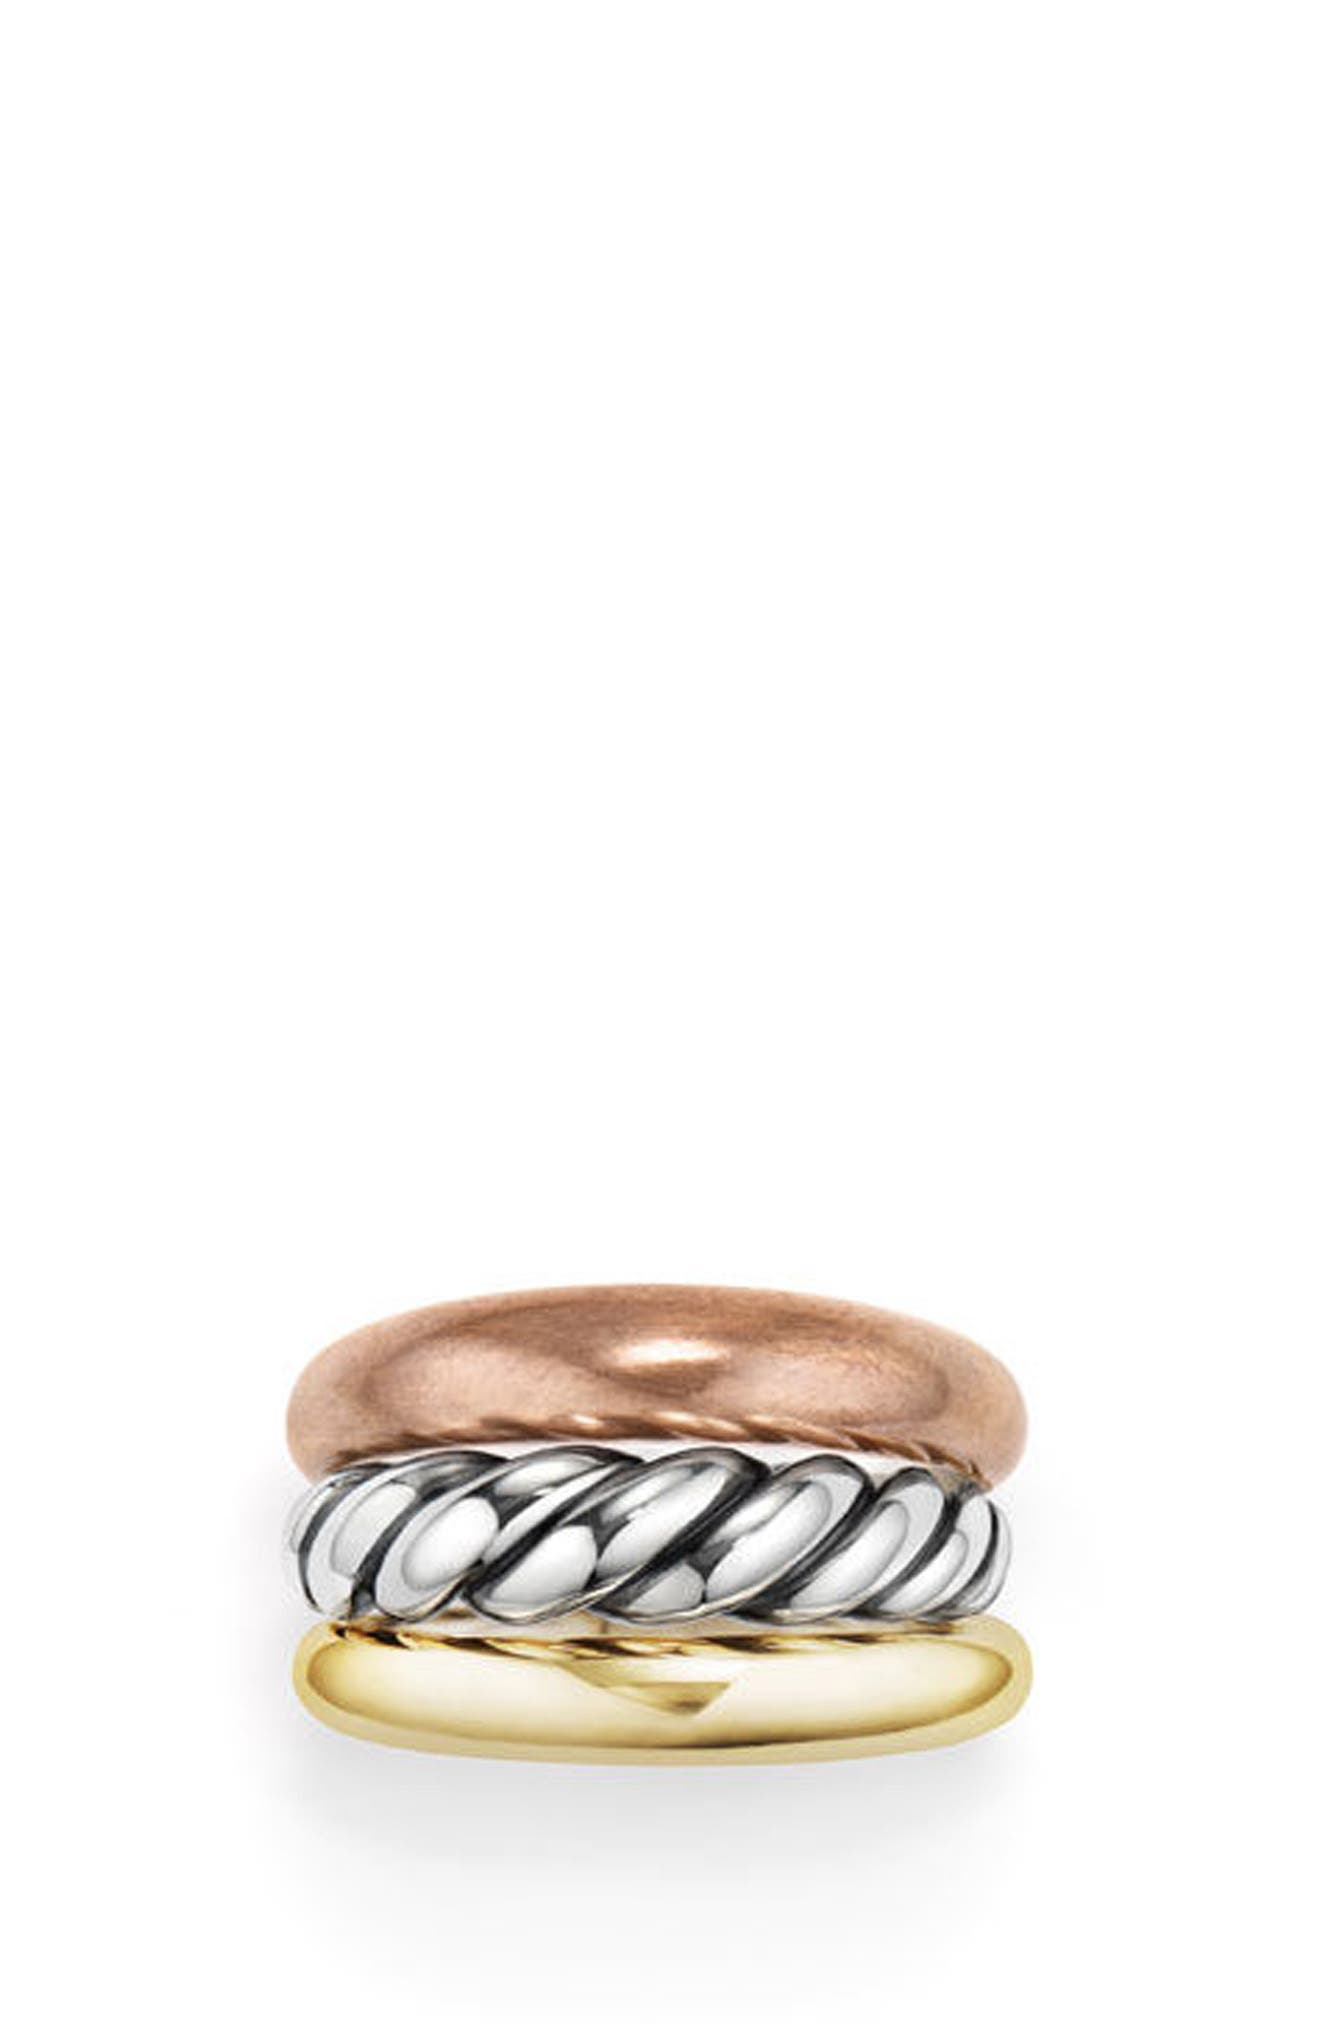 Pure Form Mixed Metal Three-Row Ring with Bronze, Silver & Brass,                             Alternate thumbnail 4, color,                             040